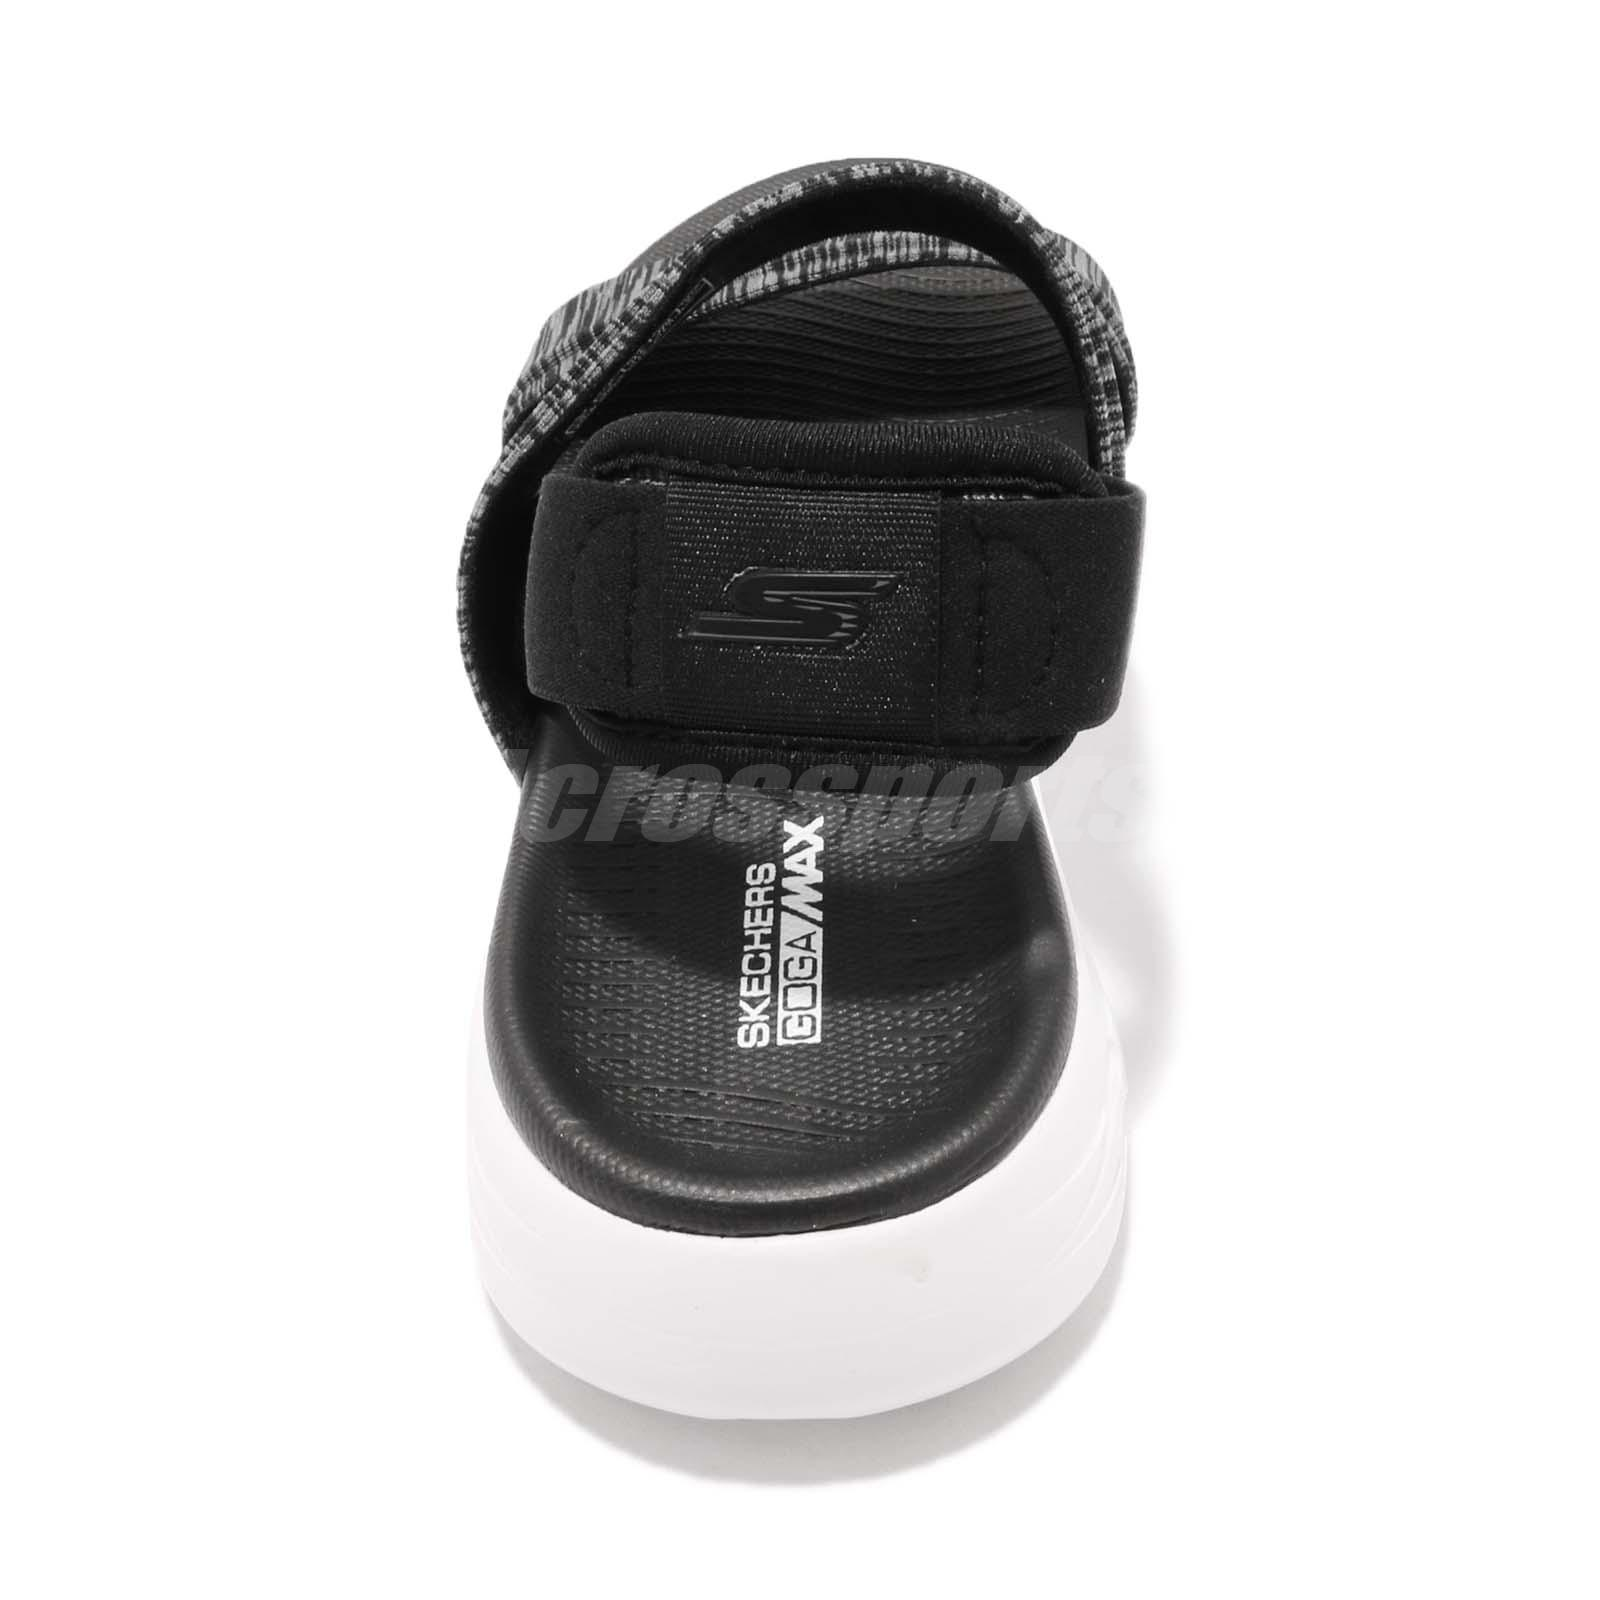 c4319ccec500 Skechers On-The-Go 600-Foxy Black White Women Sports Sandal Shoes ...